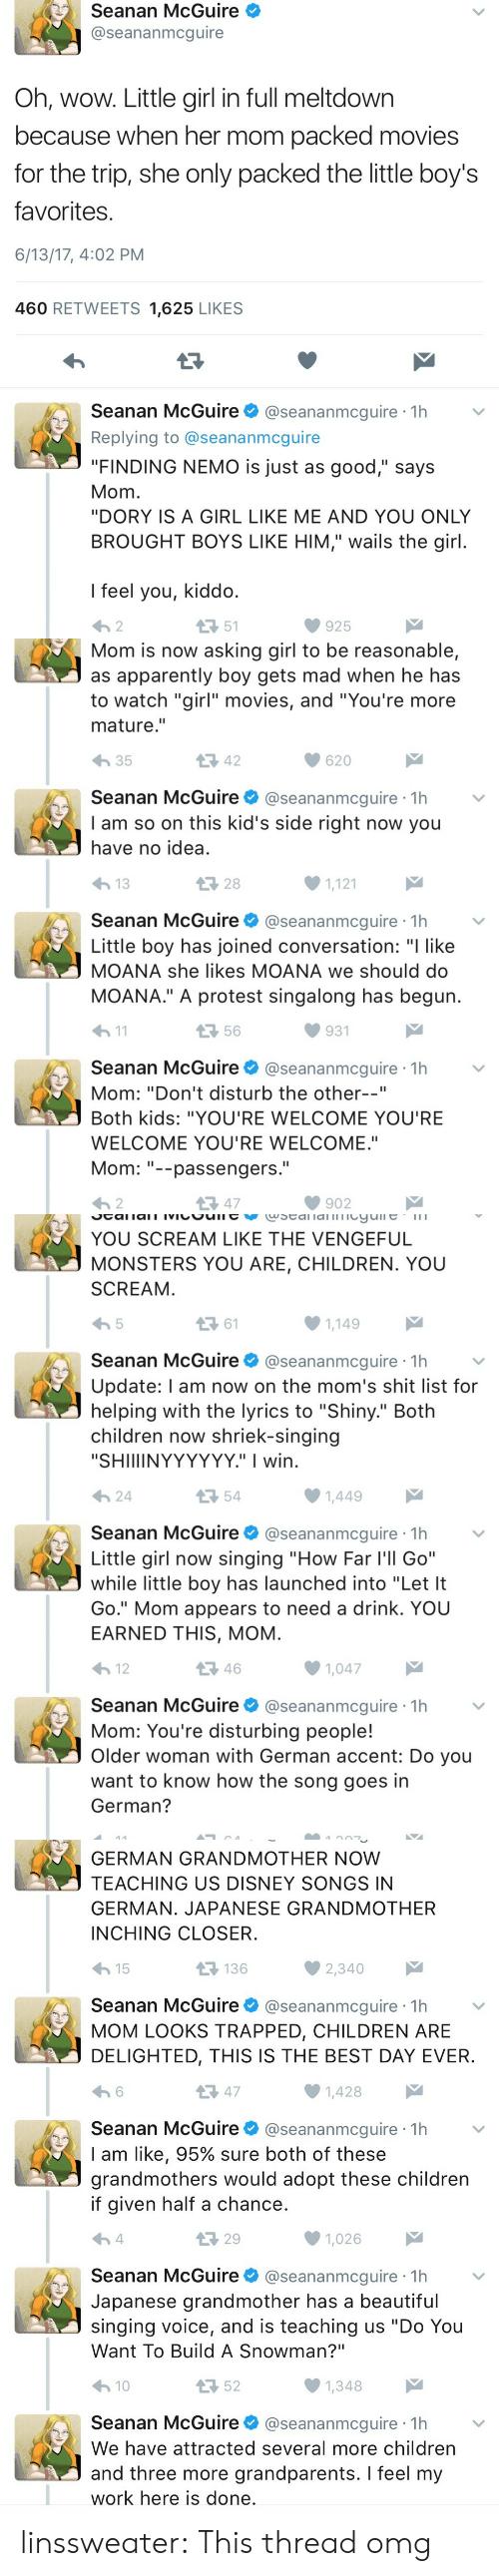 "Finding Nemo: Seanan McGuire  @seananmcguire  Oh, wow. Little girl in full meltdown  because when her mom packed movies  for the trip, she only packed the little boy's  favorites  6/13/17, 4:02 PM  460 RETWEETS 1,625 LIKES  Seanan McGuire@seananmcguire 1h  Replying to @seananmcguire  ""FINDING NEMO is just as good,"" says  Mom  ""DORY IS A GIRL LIKE ME AND YOU ONLY  BROUGHT BOYS LIKE HIM,"" wails the girl  I feel you, kiddo  わ2  51  925   Mom is now asking girl to be reasonable,  as apparently boy gets mad when he has  to watch ""girl"" movies, and ""You're more  mature.""  わ35  42  620  Seanan McGuire@seananmcguire 1h  I am so on this kid's side right now you  have no idea  28  1,121  Seanan McGuire@seananmcguire 1h  Little boy has joined conversation: ""I like  MOANA she likes MOANA we should do  MOANA."" A protest singalong has begun  h1  56  931  Seanan McGuire@seananmcguire 1h  Mom: ""Don't disturb the other--""  Both kids: ""YOU'RE WELCOME YOU'RE  WELCOME YOU'RE WELCOME.""  Mom--passengers.  わ2  다 47  902   YOU SCREAM LIKE THE VENGEFUL  MONSTERS YOU ARE, CHILDREN. YOU  SCREAM  ロ61  1,149  Seanan McGuire@seananmcguire 1h  Update: l am now on the mom's shit list for  helping with the lyrics to ""Shiny."" Both  children now shriek-singing  ""SHIIIINYYYYYY."" I wirn  24  54  Seanan McGuireネ@seananmcgure·1h  Little girl now singing ""How Far l'll Go""  while little boy has launched into ""Let It  Go."" Mom appears to need a drink. YOU  EARNED THIS, MOM  12  46  1,047  Seanan McGuire@seananmcguire 1h  Mom: You're disturbing people!  Older woman with German accent: Do you  want to know how the song goes in  German?   GERMAN GRANDMOTHER NOW  TEACHING US DISNEY SONGS IN  GERMAN. JAPANESE GRANDMOTHER  INCHING CLOSER  15  136  Seanan McGuire@seananmcguire 1h  MOM LOOKS TRAPPED, CHILDREN ARE  DELIGHTED, THIS IS THE BEST DAY EVER  13 47  1,428  Seanan McGuire@seananmcguire 1h  I am like, 95% sure both of these  grandmothers would adopt these children  if given half a chance  29  1,026  Seanan McGuire @seananmcguire·1h  Japanese grandmother has a beautiful  singing voice, and is teaching us ""Do You  Want To Build A Snowman?""  10  52  Seanan McGuire@seananmcguire 1h  We have attracted several more children  and three more grandparents. I feel my  work here is done linssweater: This thread omg"